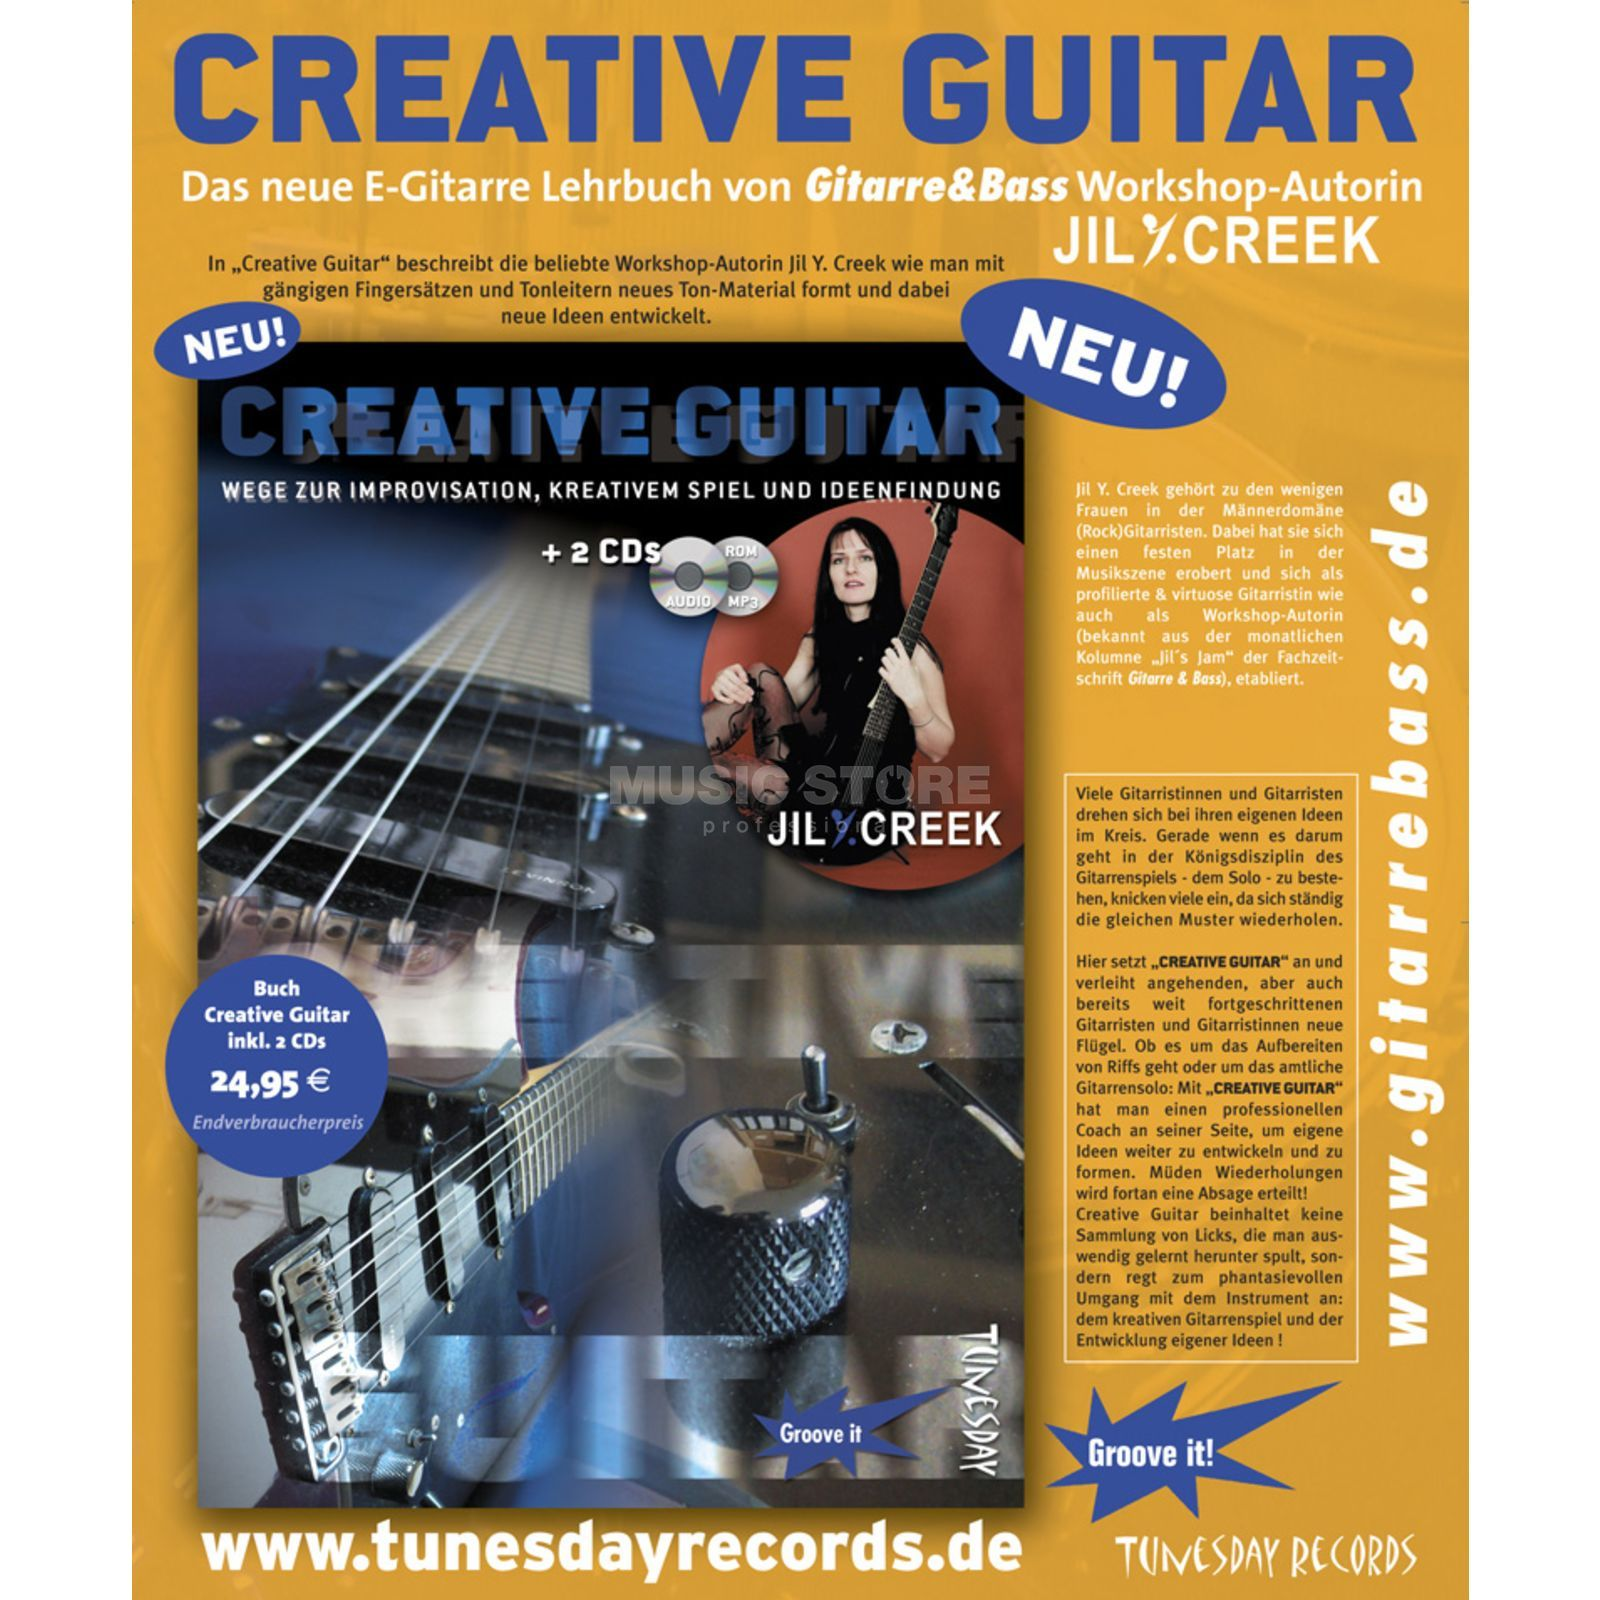 Tunesday Creative Guitar Jill Y. Creek, Buch und 2 CDs Produktbild